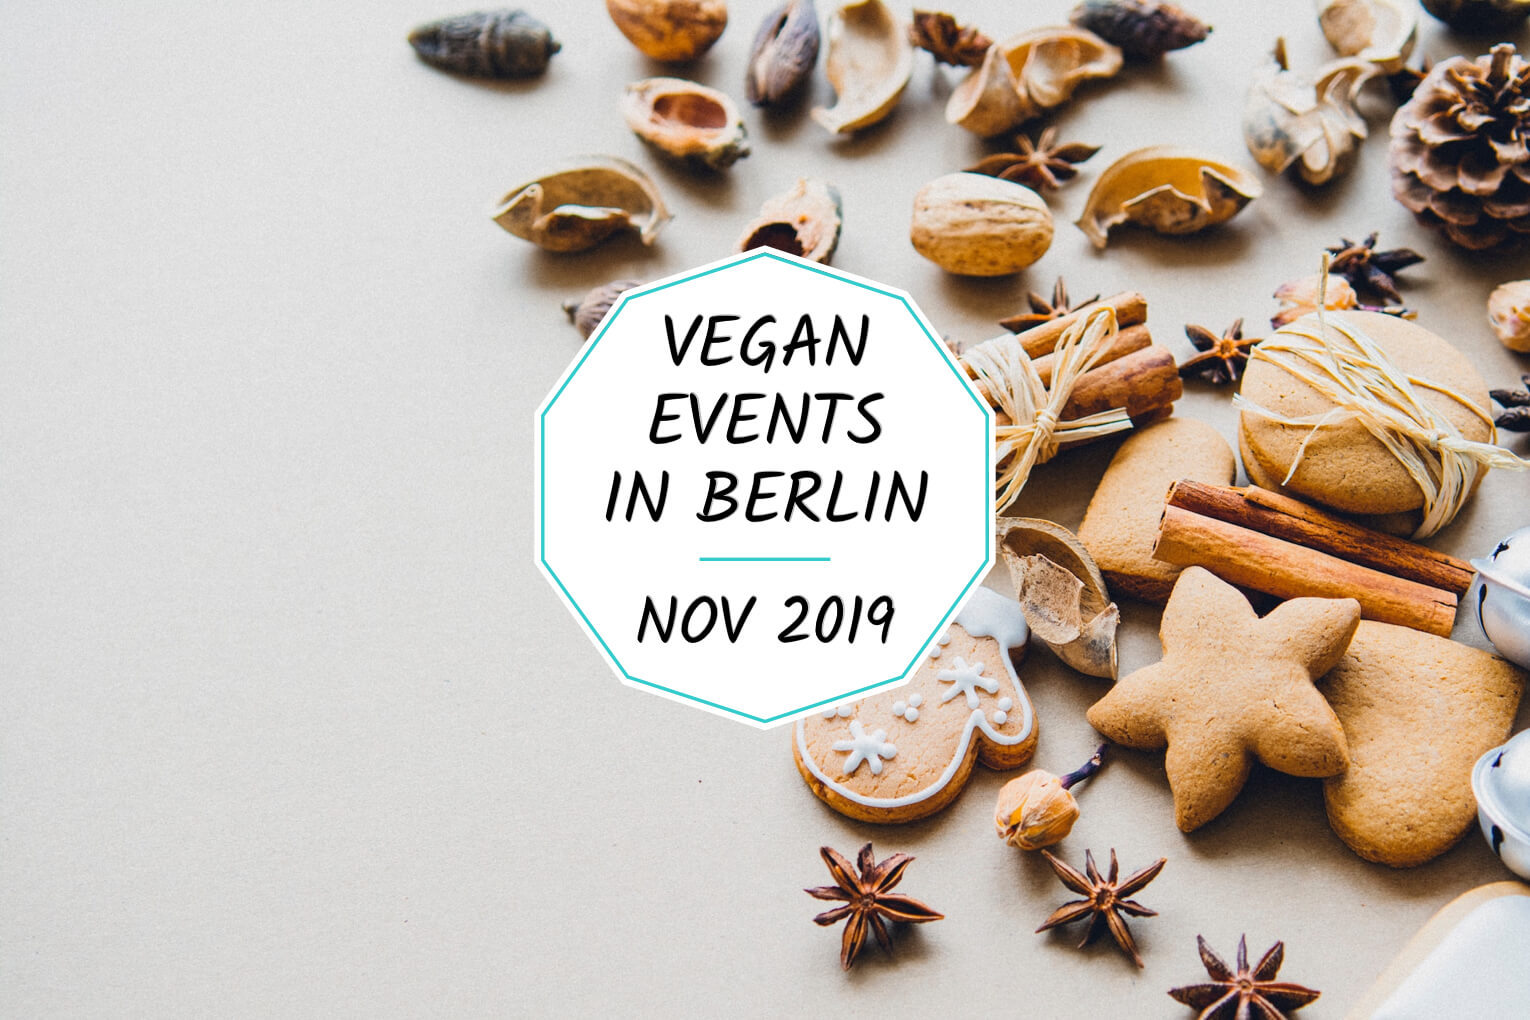 Veganevents in Berlin in November 2019 - a list